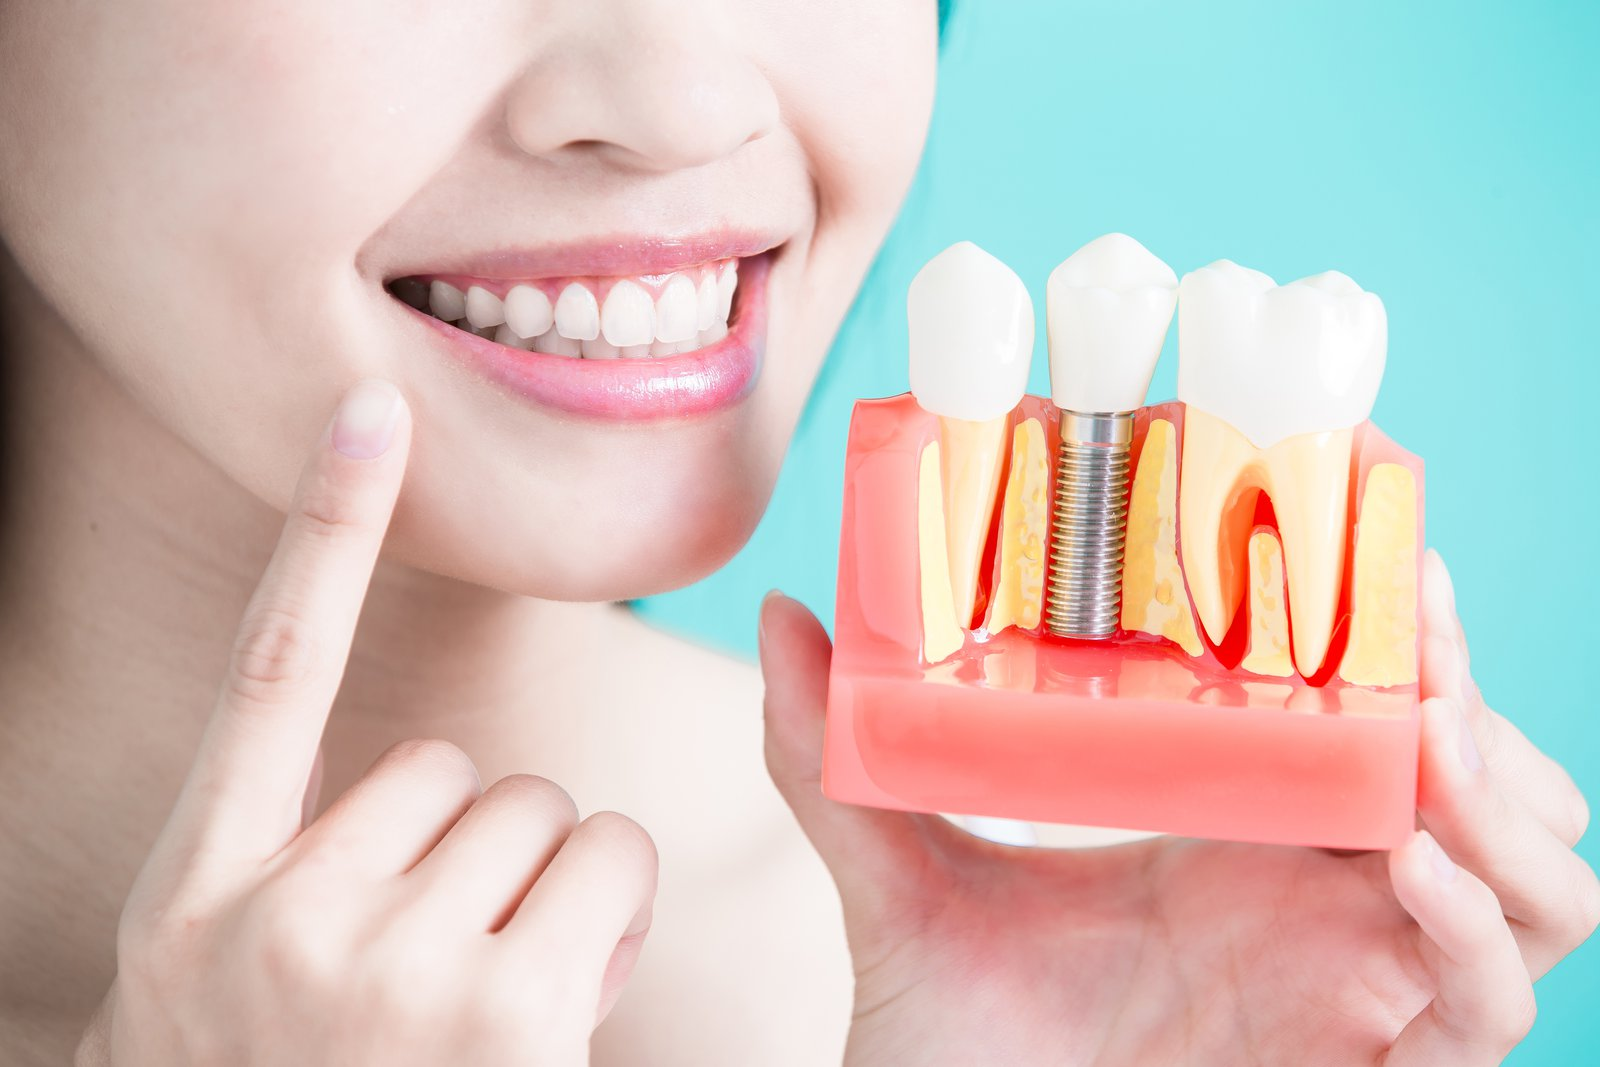 How Does Dental Implant Surgery Work?